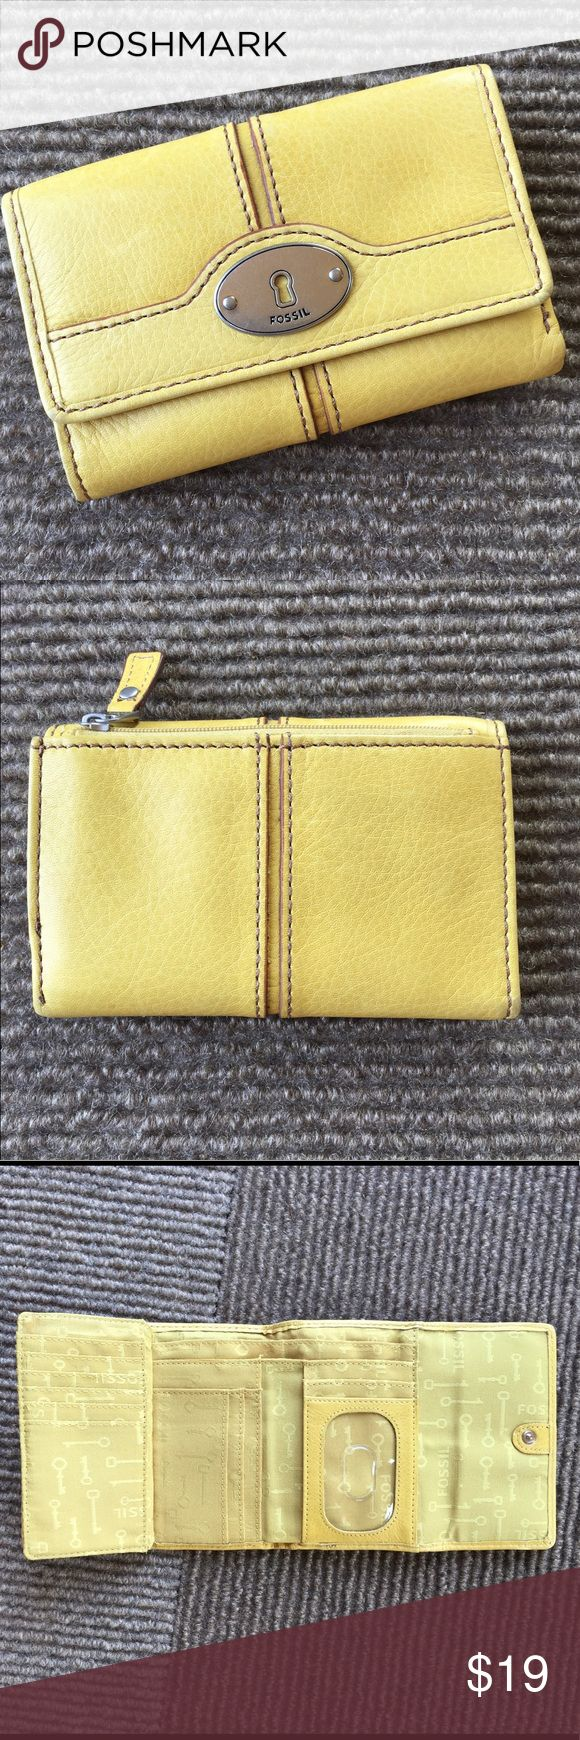 Fossil Yellow Leather Wallet Fossil leather wallet. Pretty yellow. Like new. Unfolds to store a lot of things! Fossil Bags Wallets